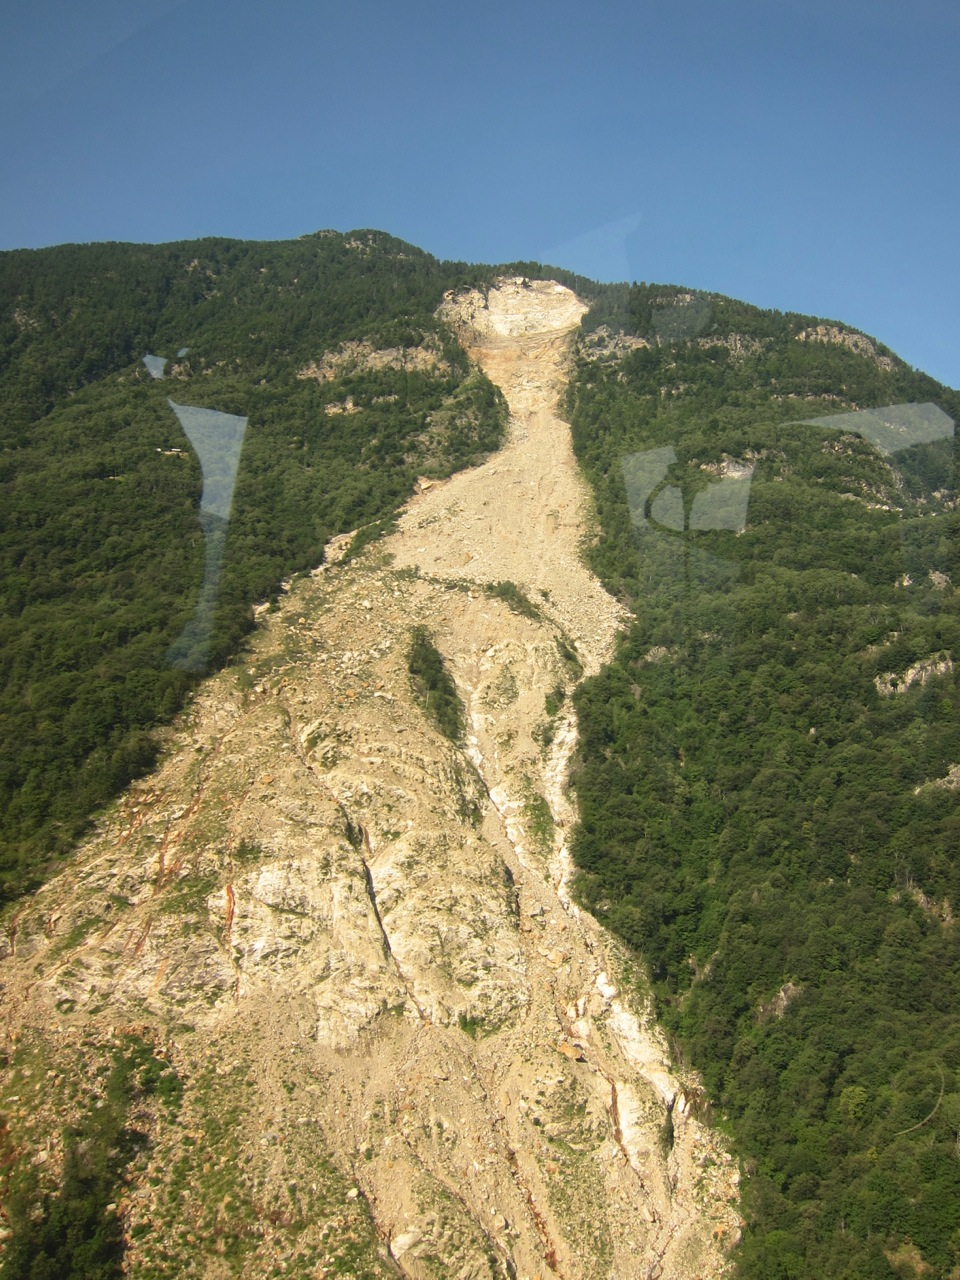 Picture taken from the helicopter taking the whole film crew to the top of the landslide.